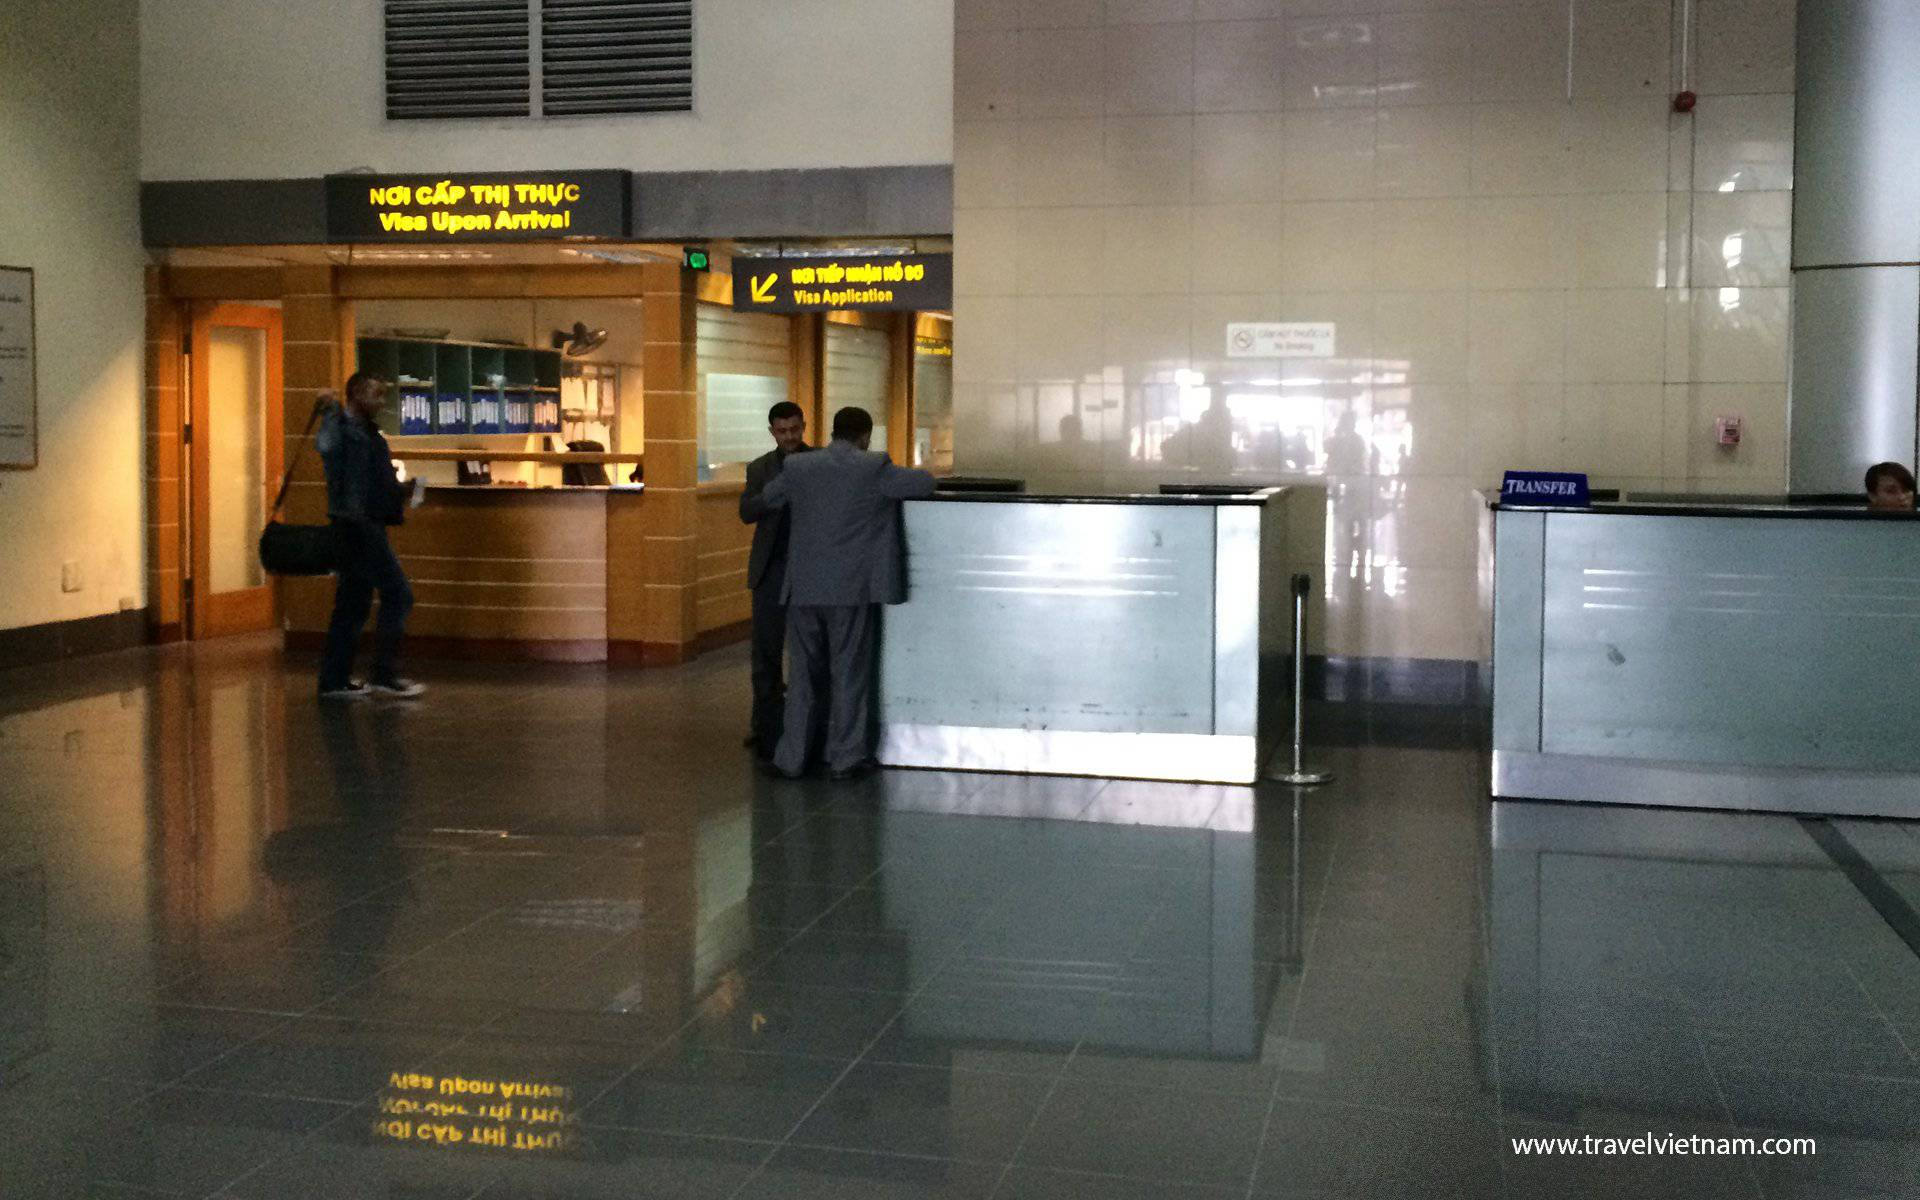 Visa On Arrival Desk at Noi Bai Airport